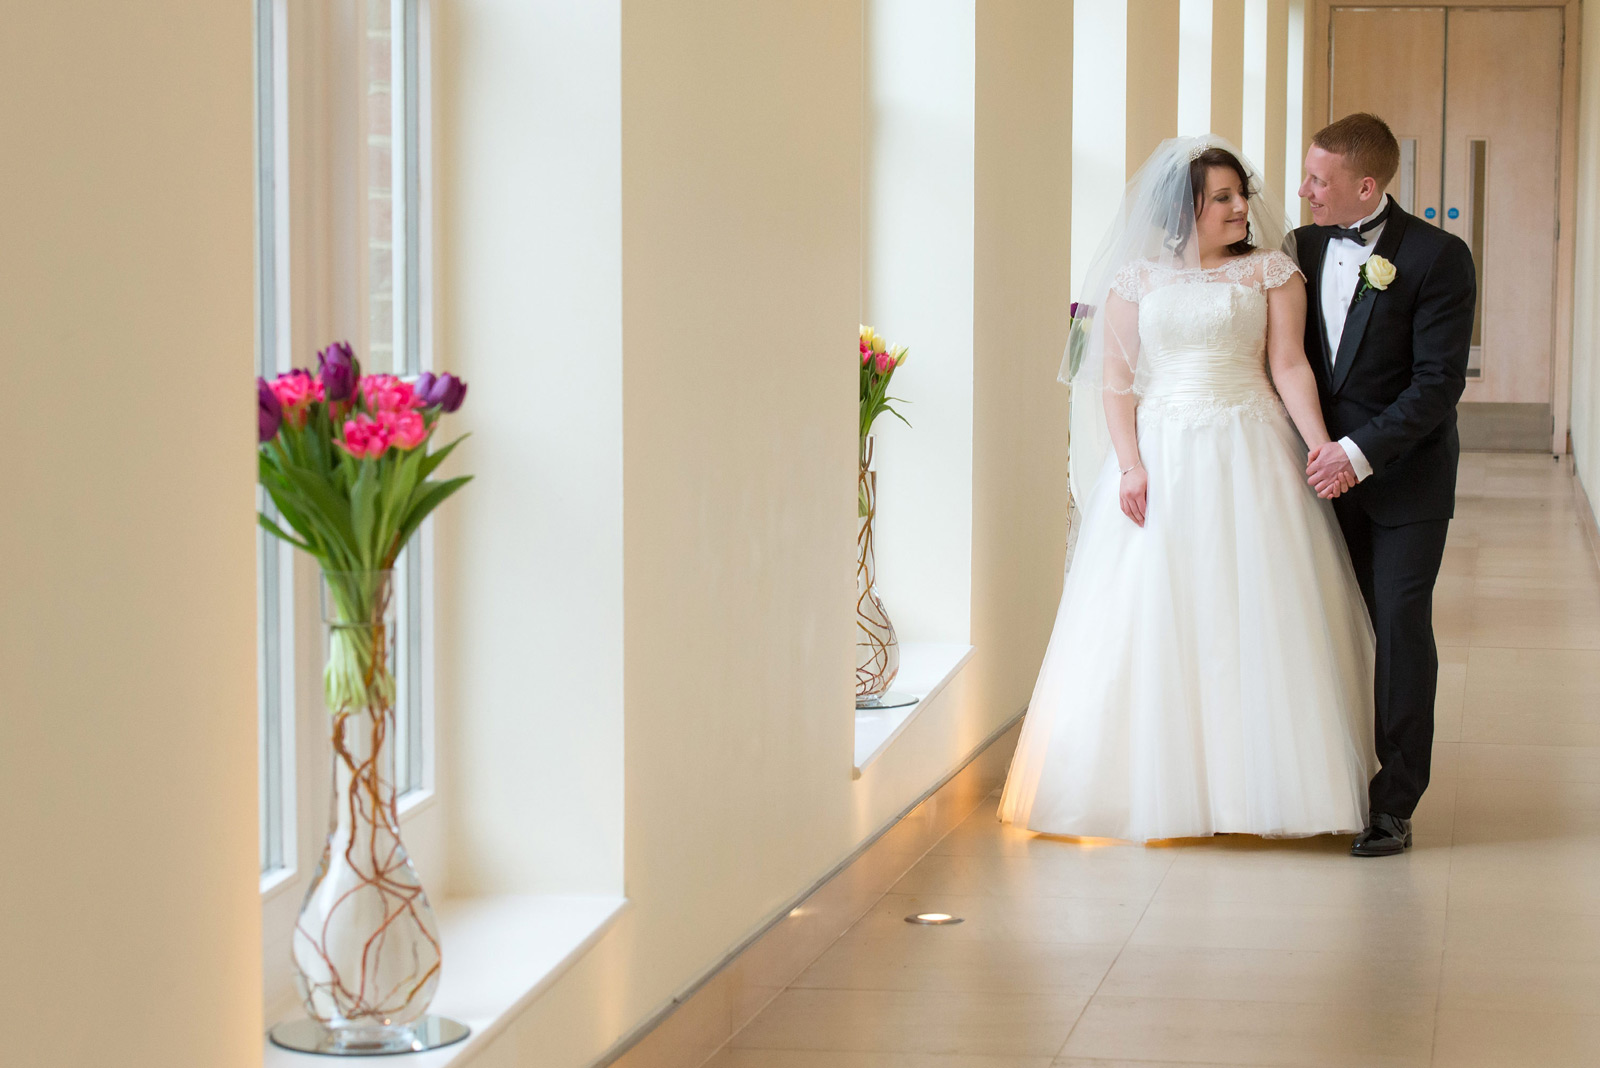 London Wedding Photography & Videography 010